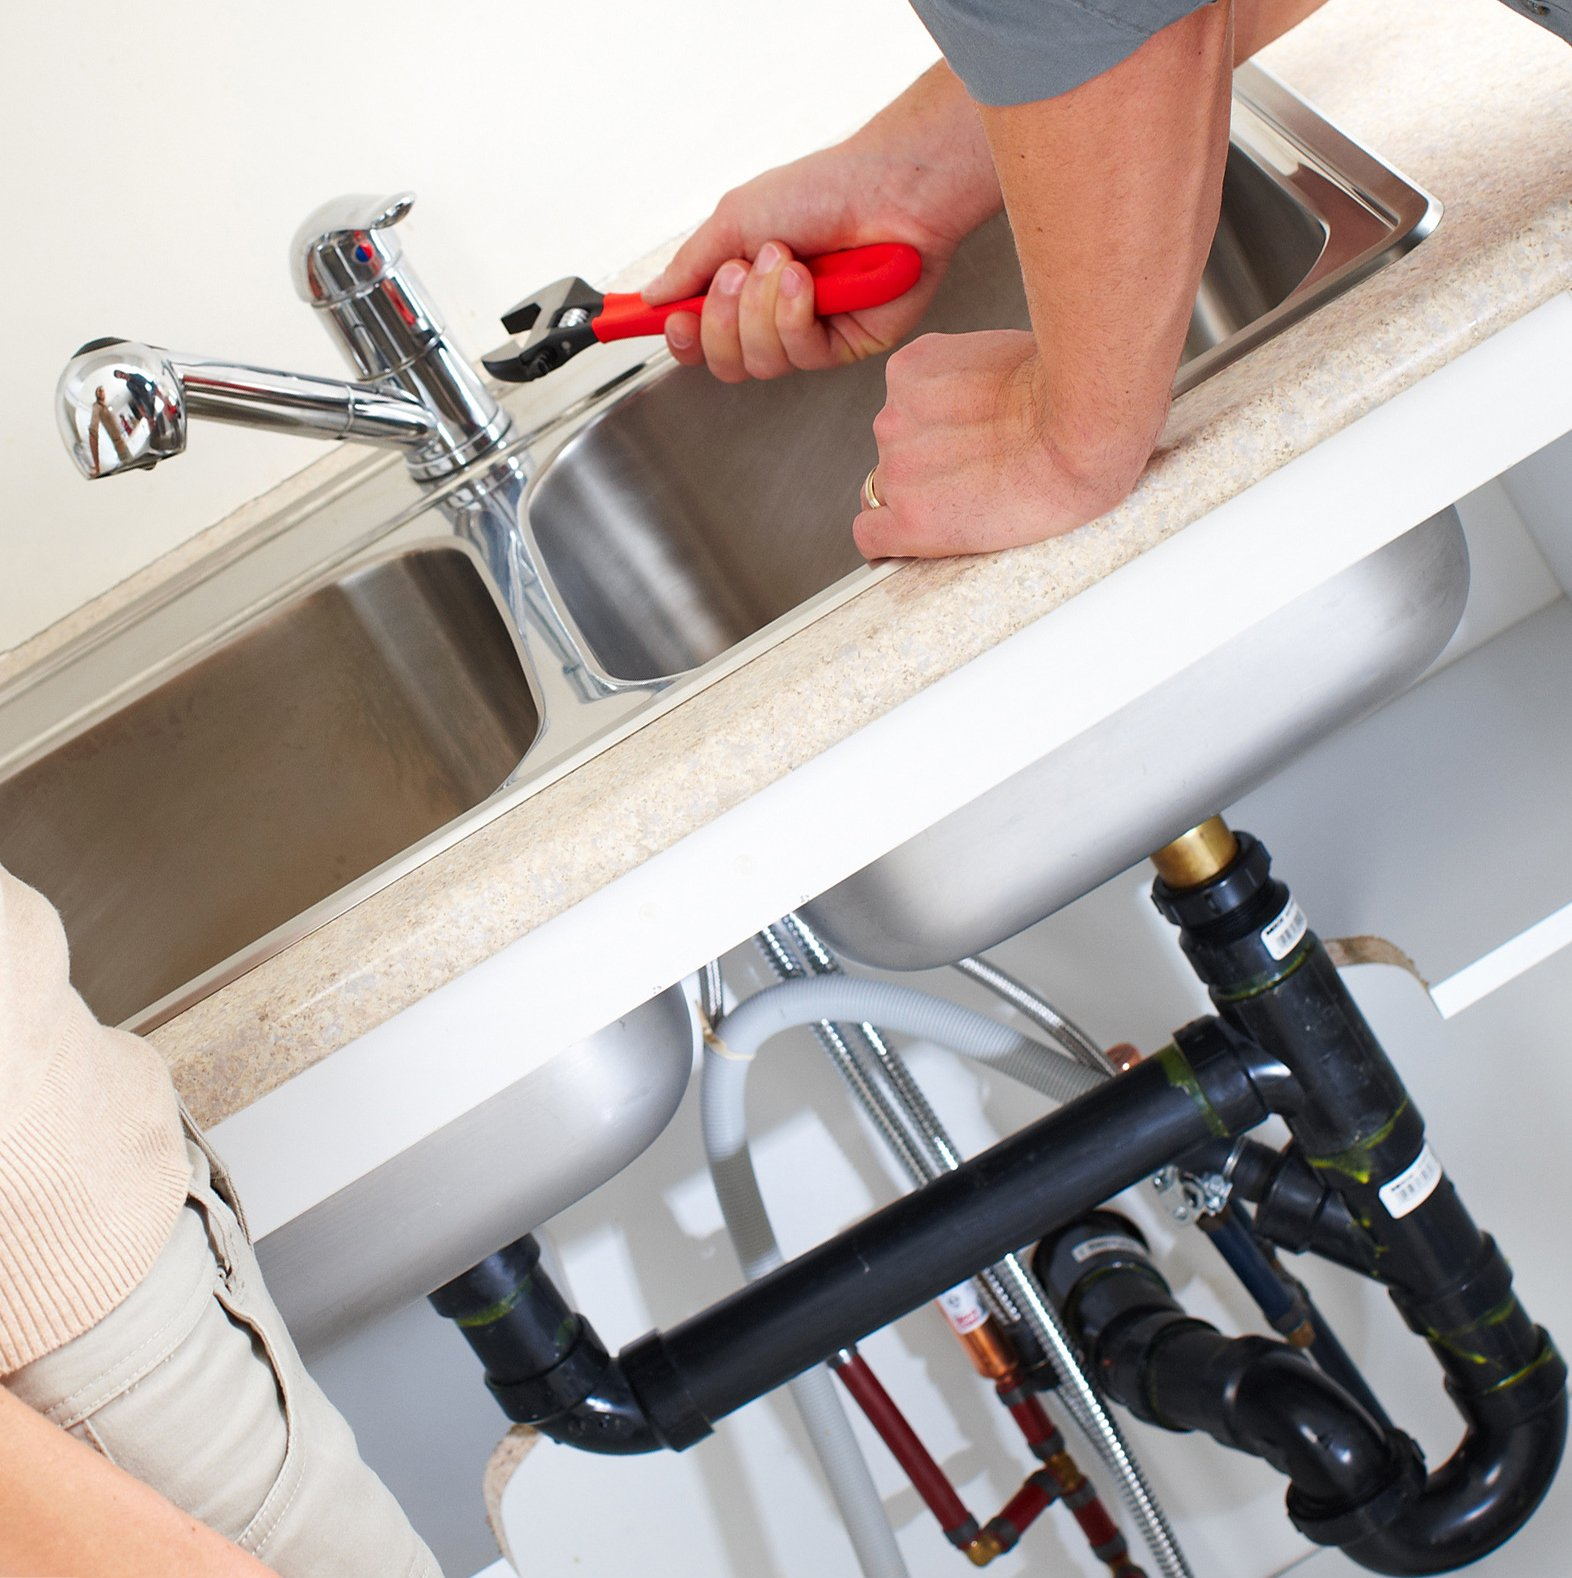 Fixing sink clogging||||